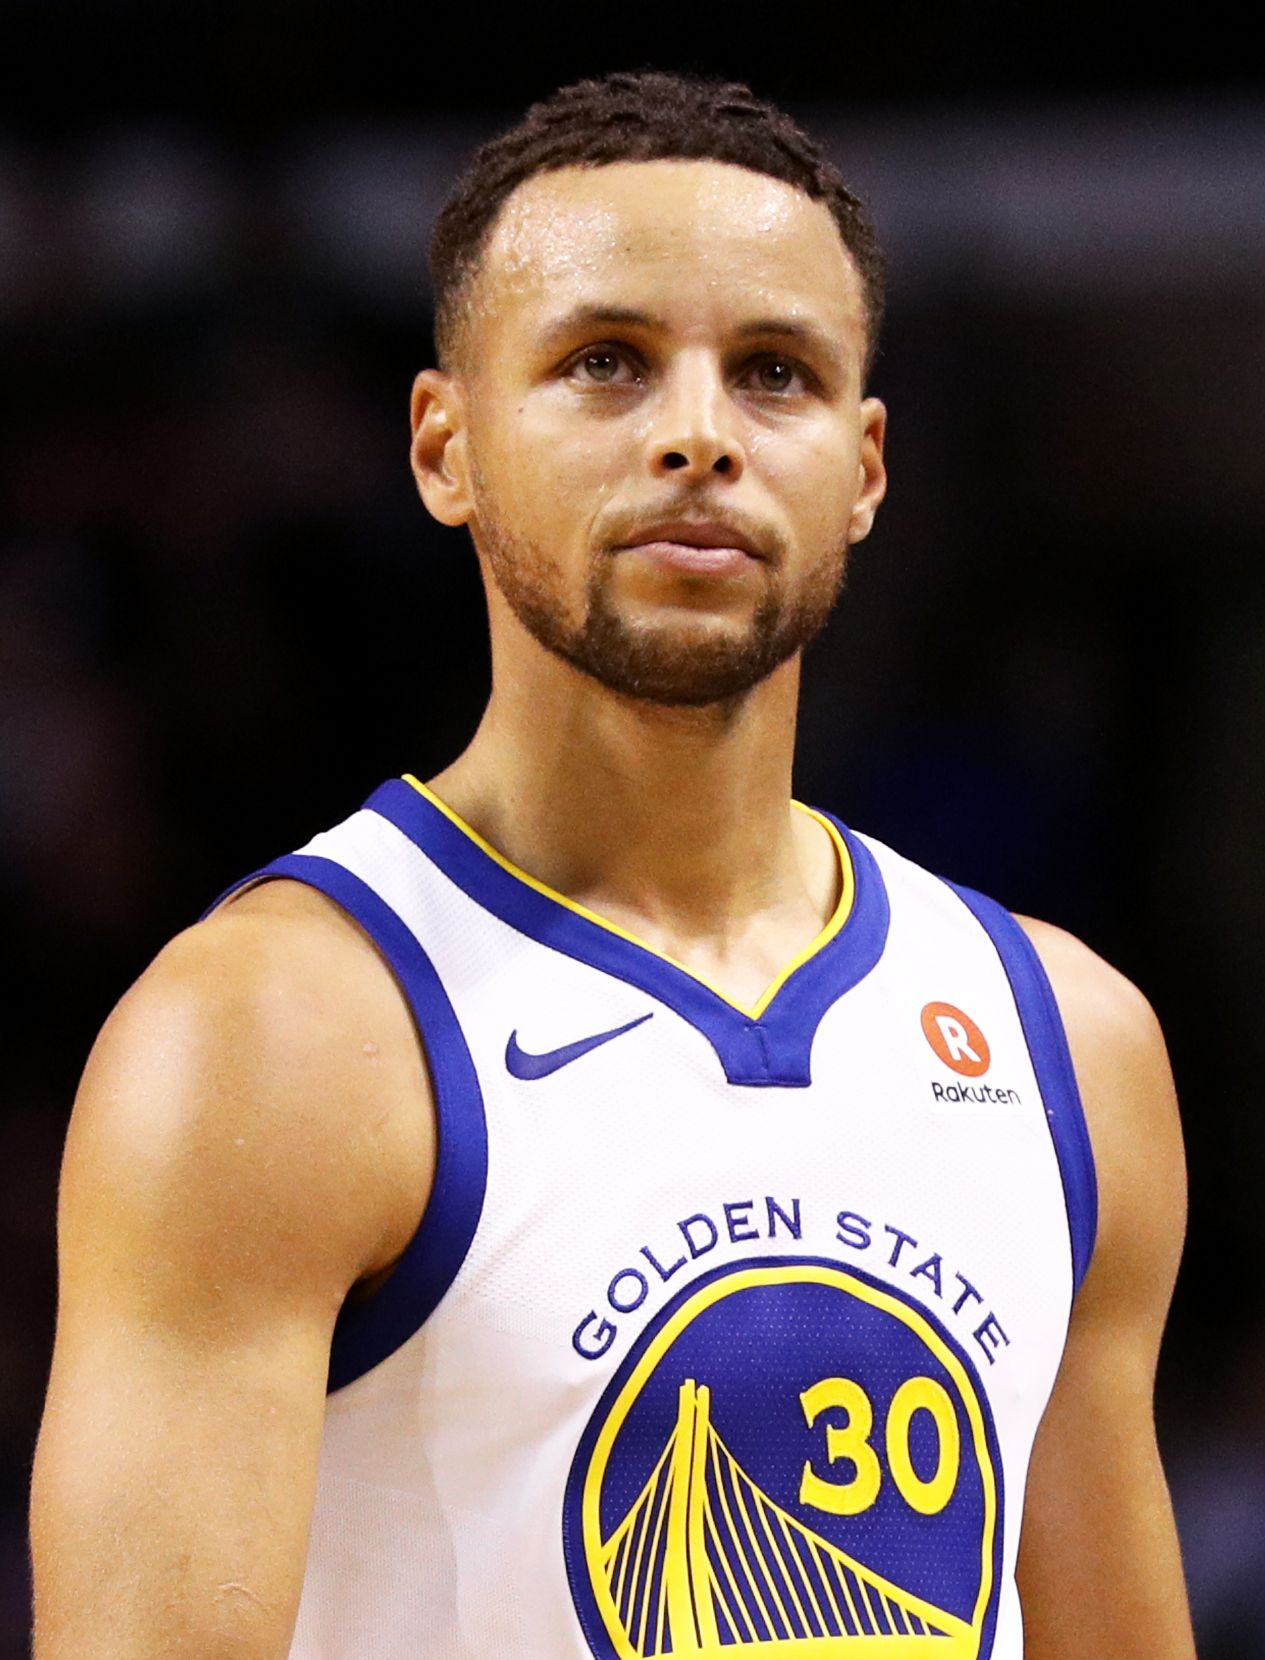 Stephen Curry of the Golden State Warriors during the second quarter against the Boston Celtics at TD Garden on November 16, 2017 in Boston, Massachusetts | Photo: Getty Images